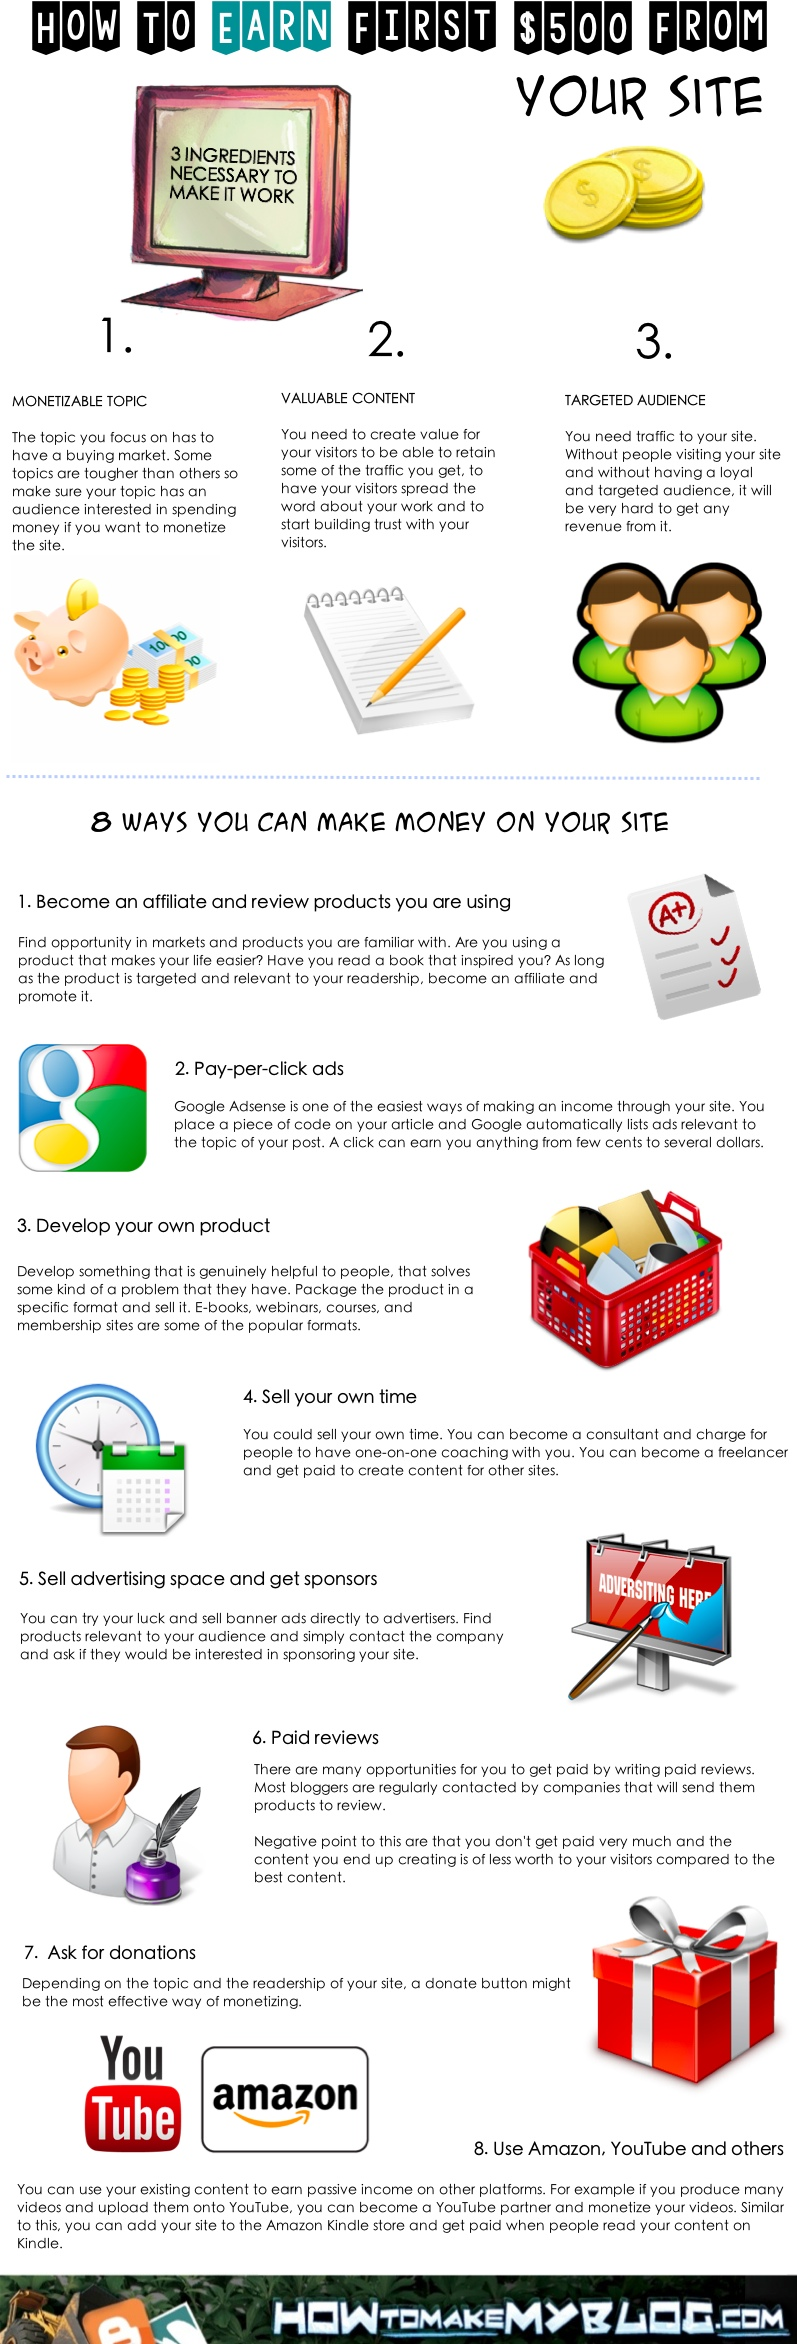 How To Earn First $1000 From Your Blog - #infographic #business #Blogging